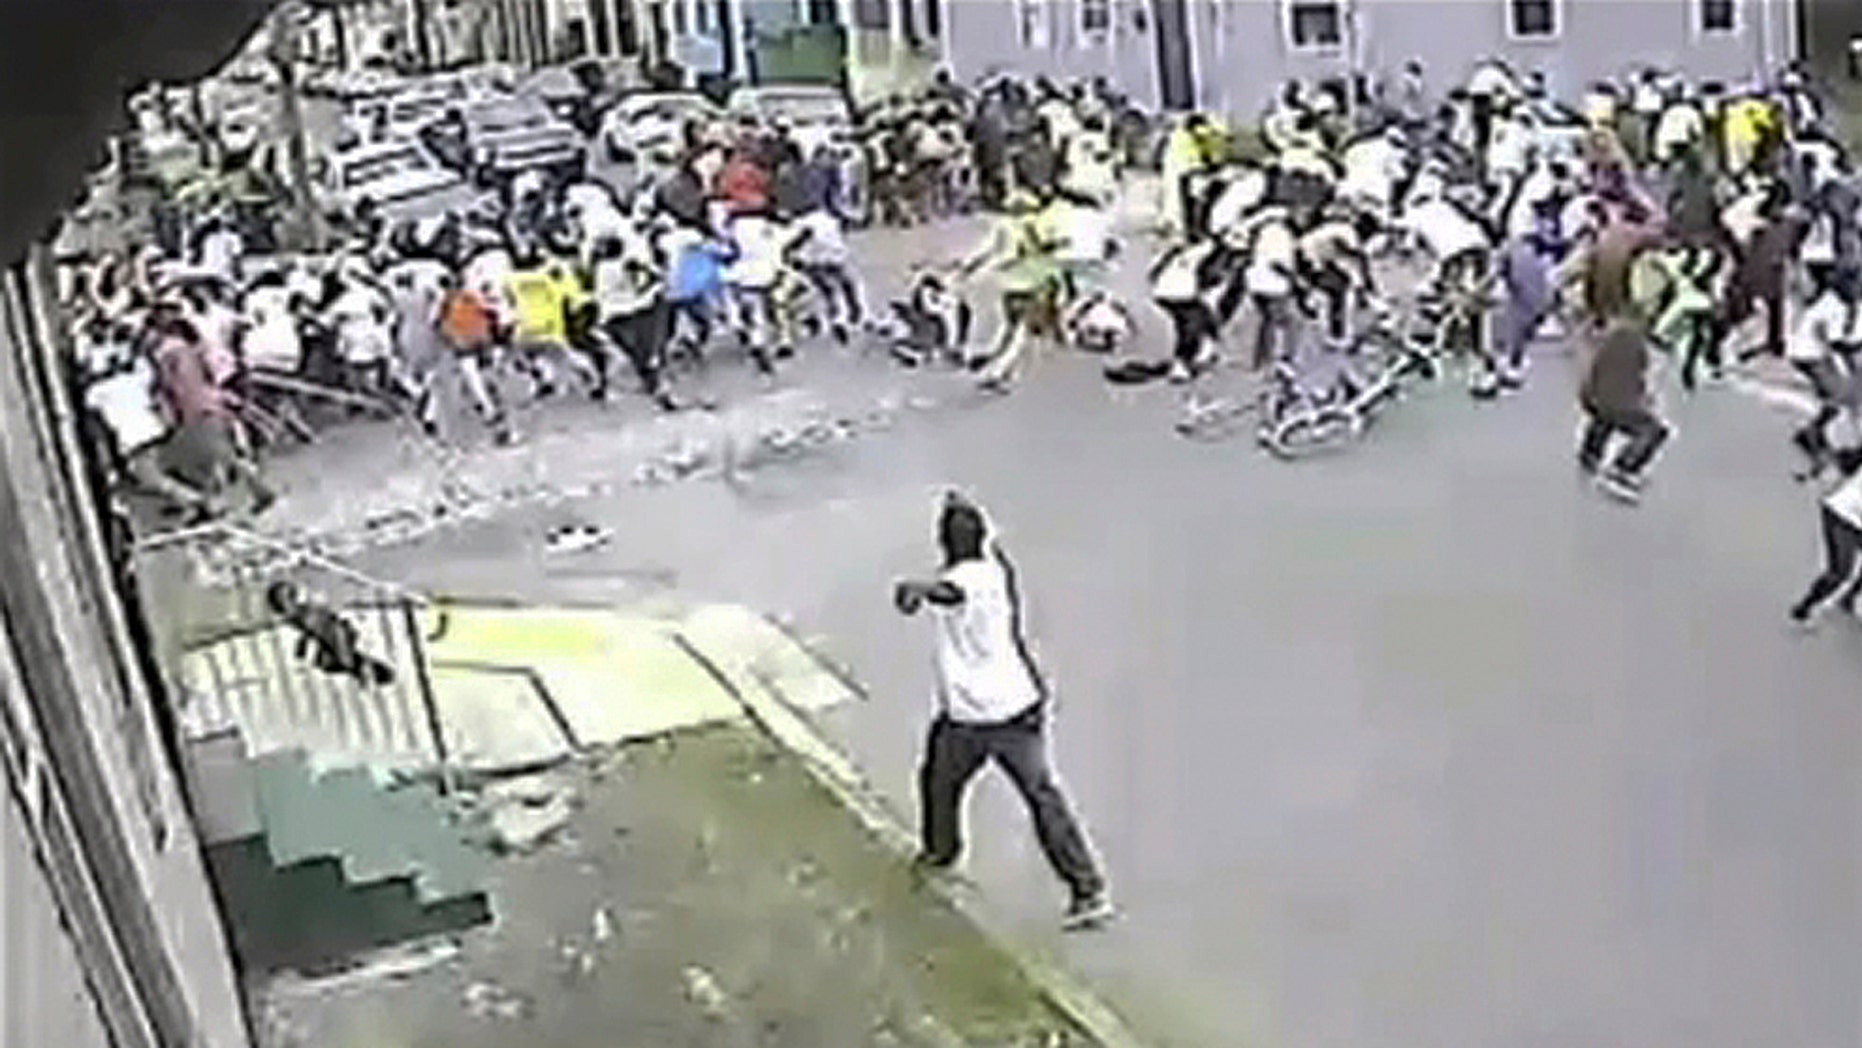 May 12, 2013: A man in a white shirt, bottom center, shoots into a crowd of people, on Mother's Day in New Orleans. New Orleans officials and cultural advocates say the Mothers Day parade shootings that left 20 people injured won't spell the end of second-line parades.